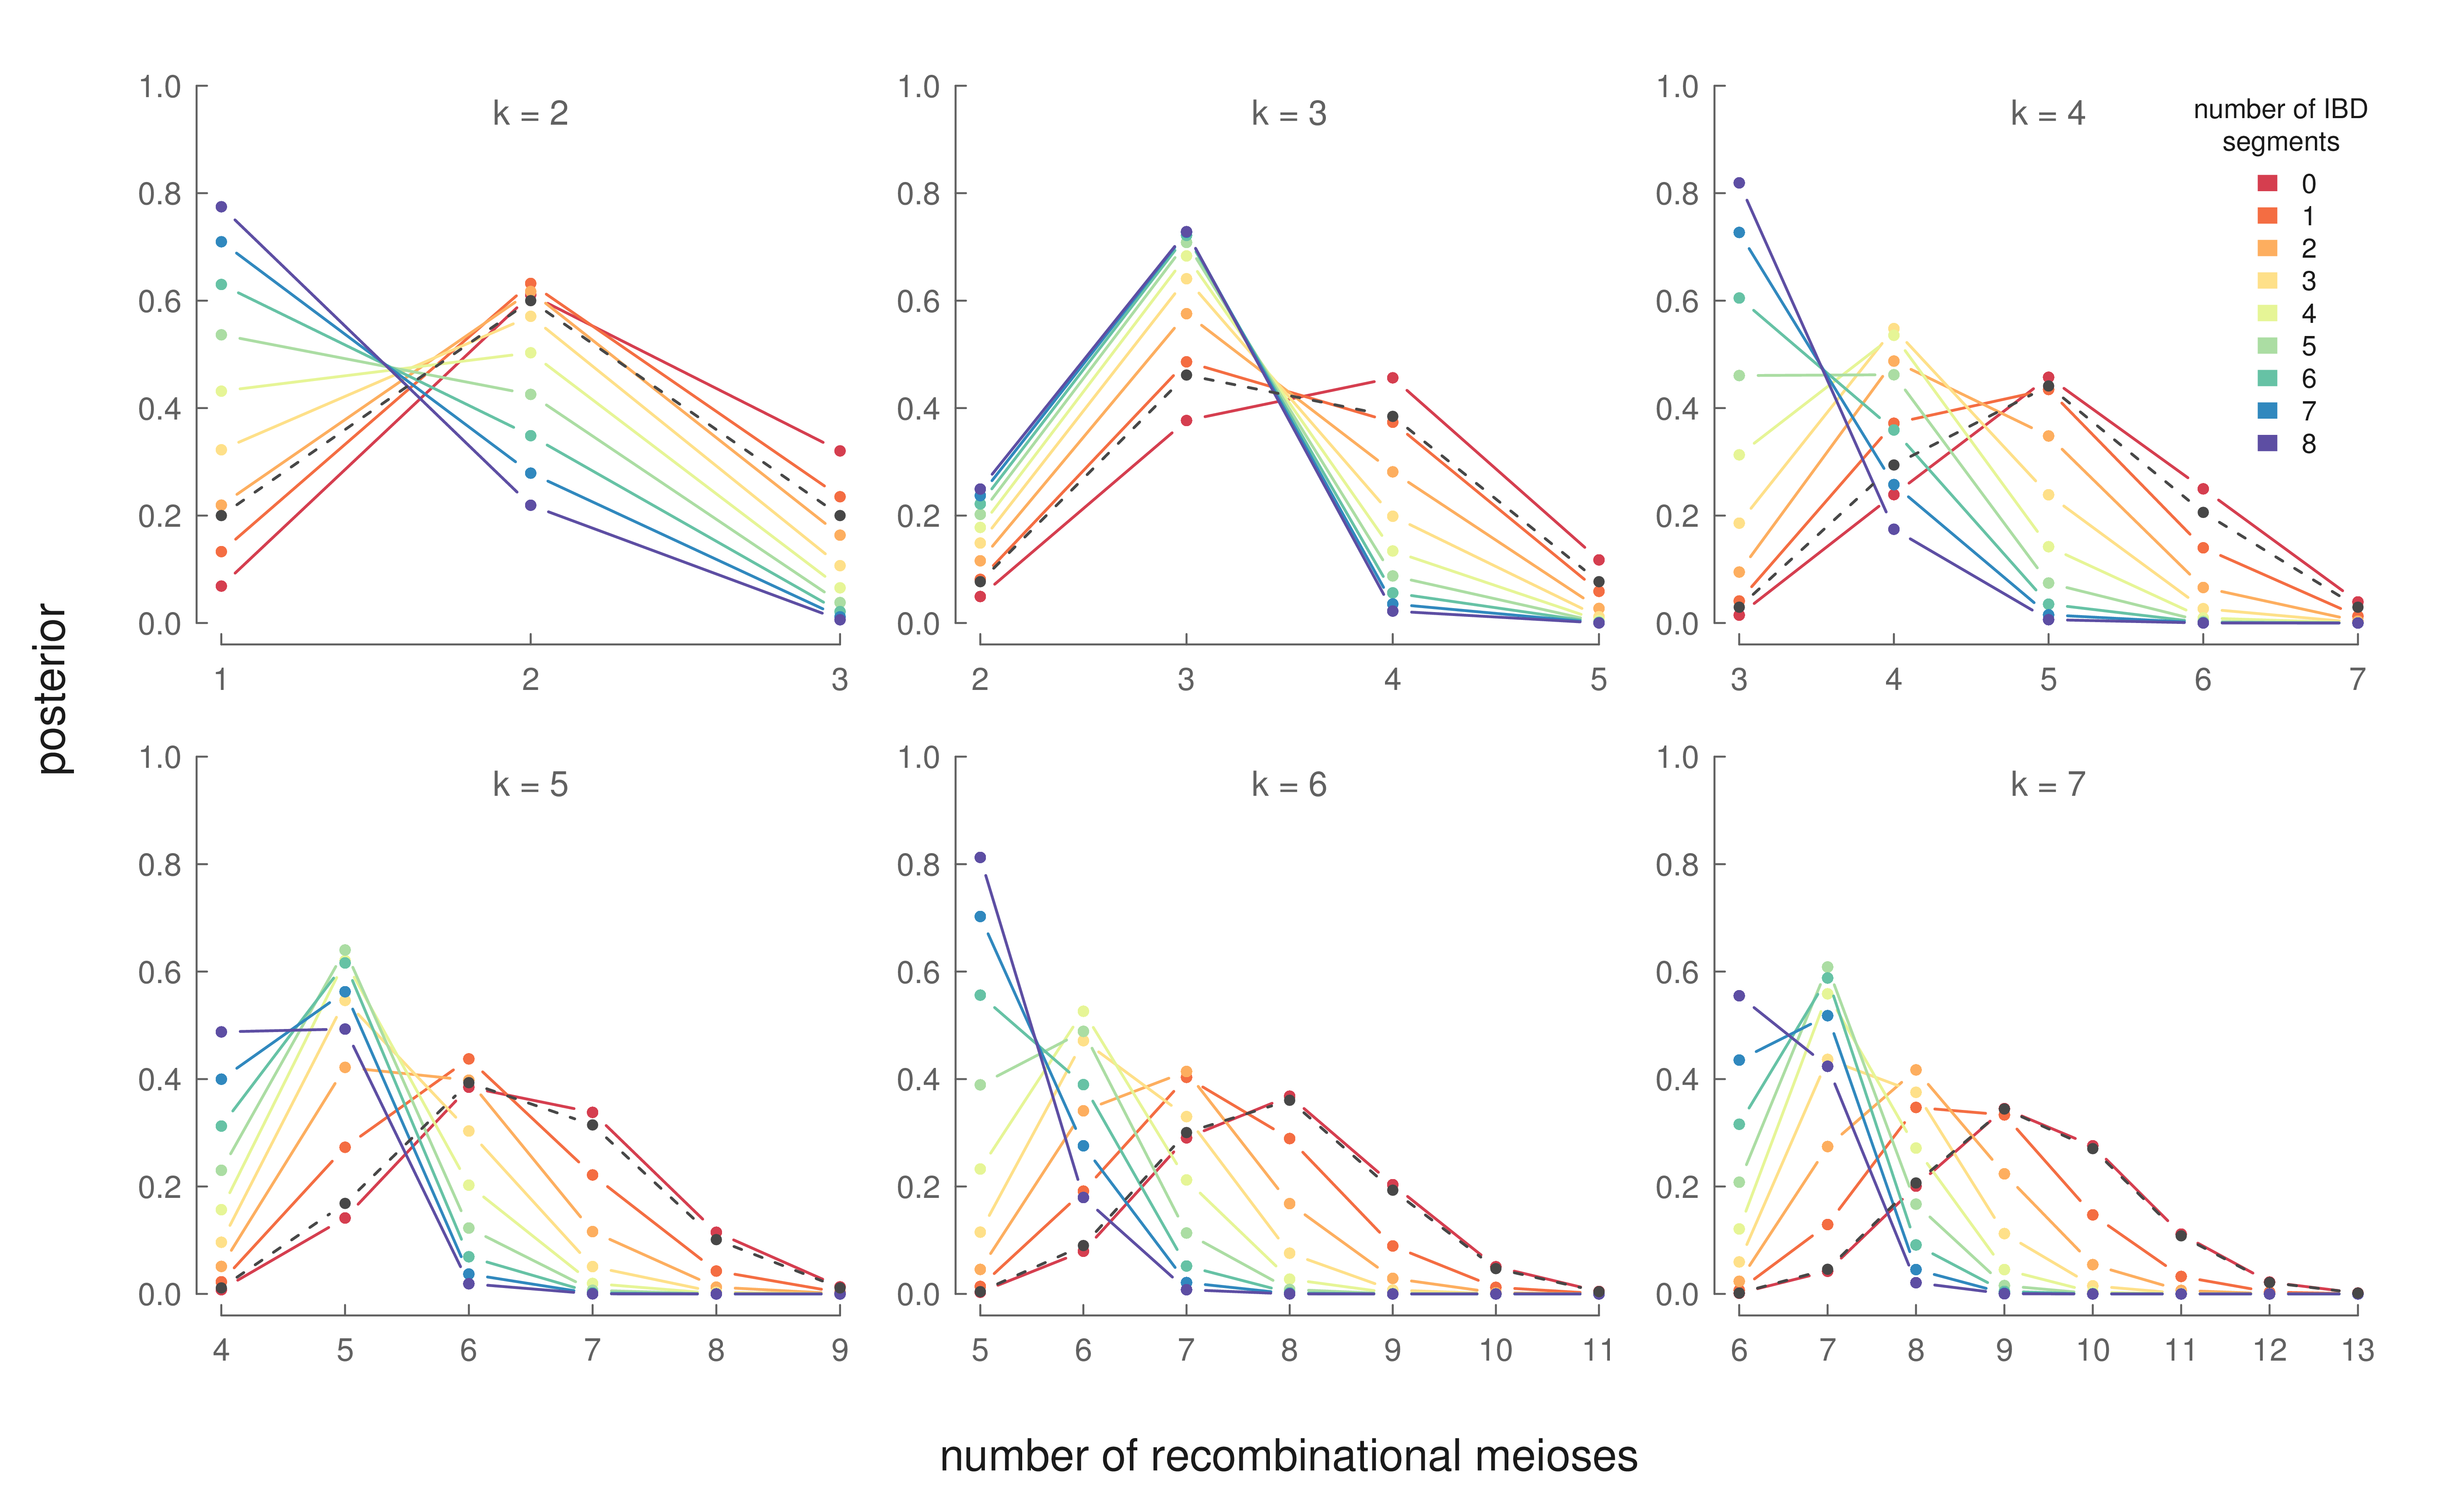 The posterior distribution for R across different generations (each panel). Each line is the number of observed segments between X half-cousins. The prior distribution is the gray dashed line.